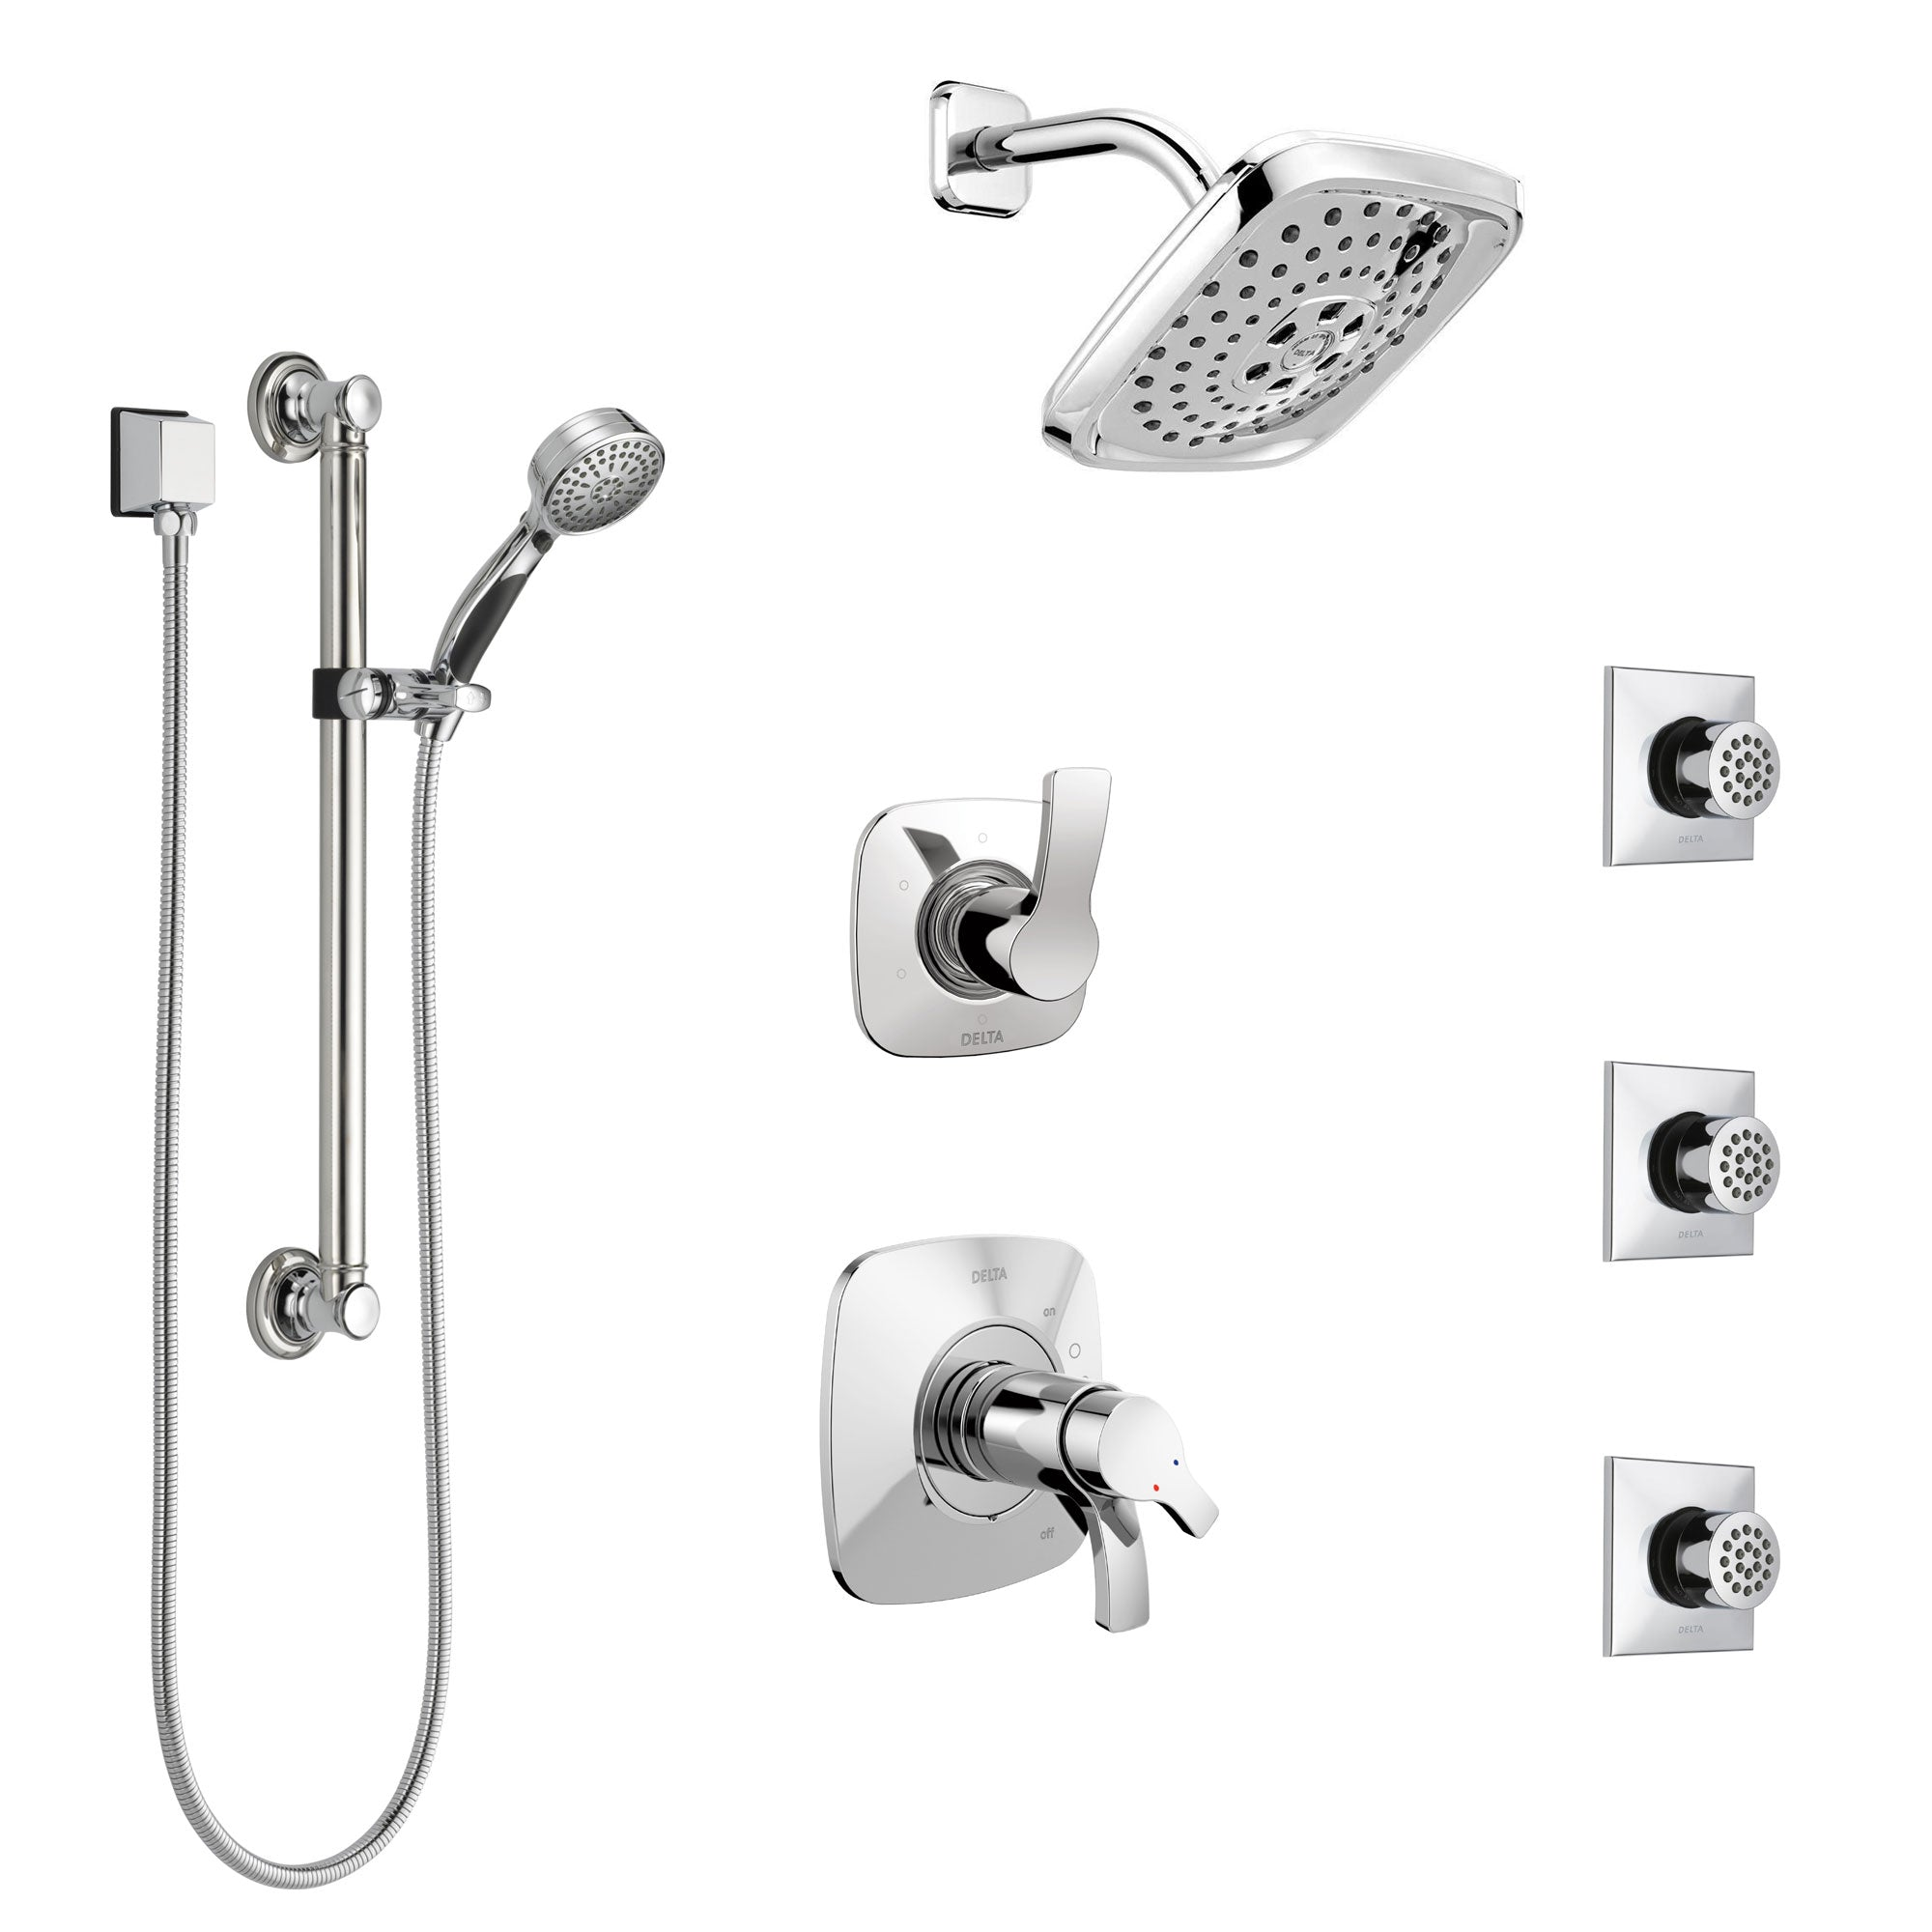 Delta Tesla Chrome Shower System with Dual Thermostatic Control, Diverter, Showerhead, 3 Body Sprays, and Hand Shower with Grab Bar SS17T25211